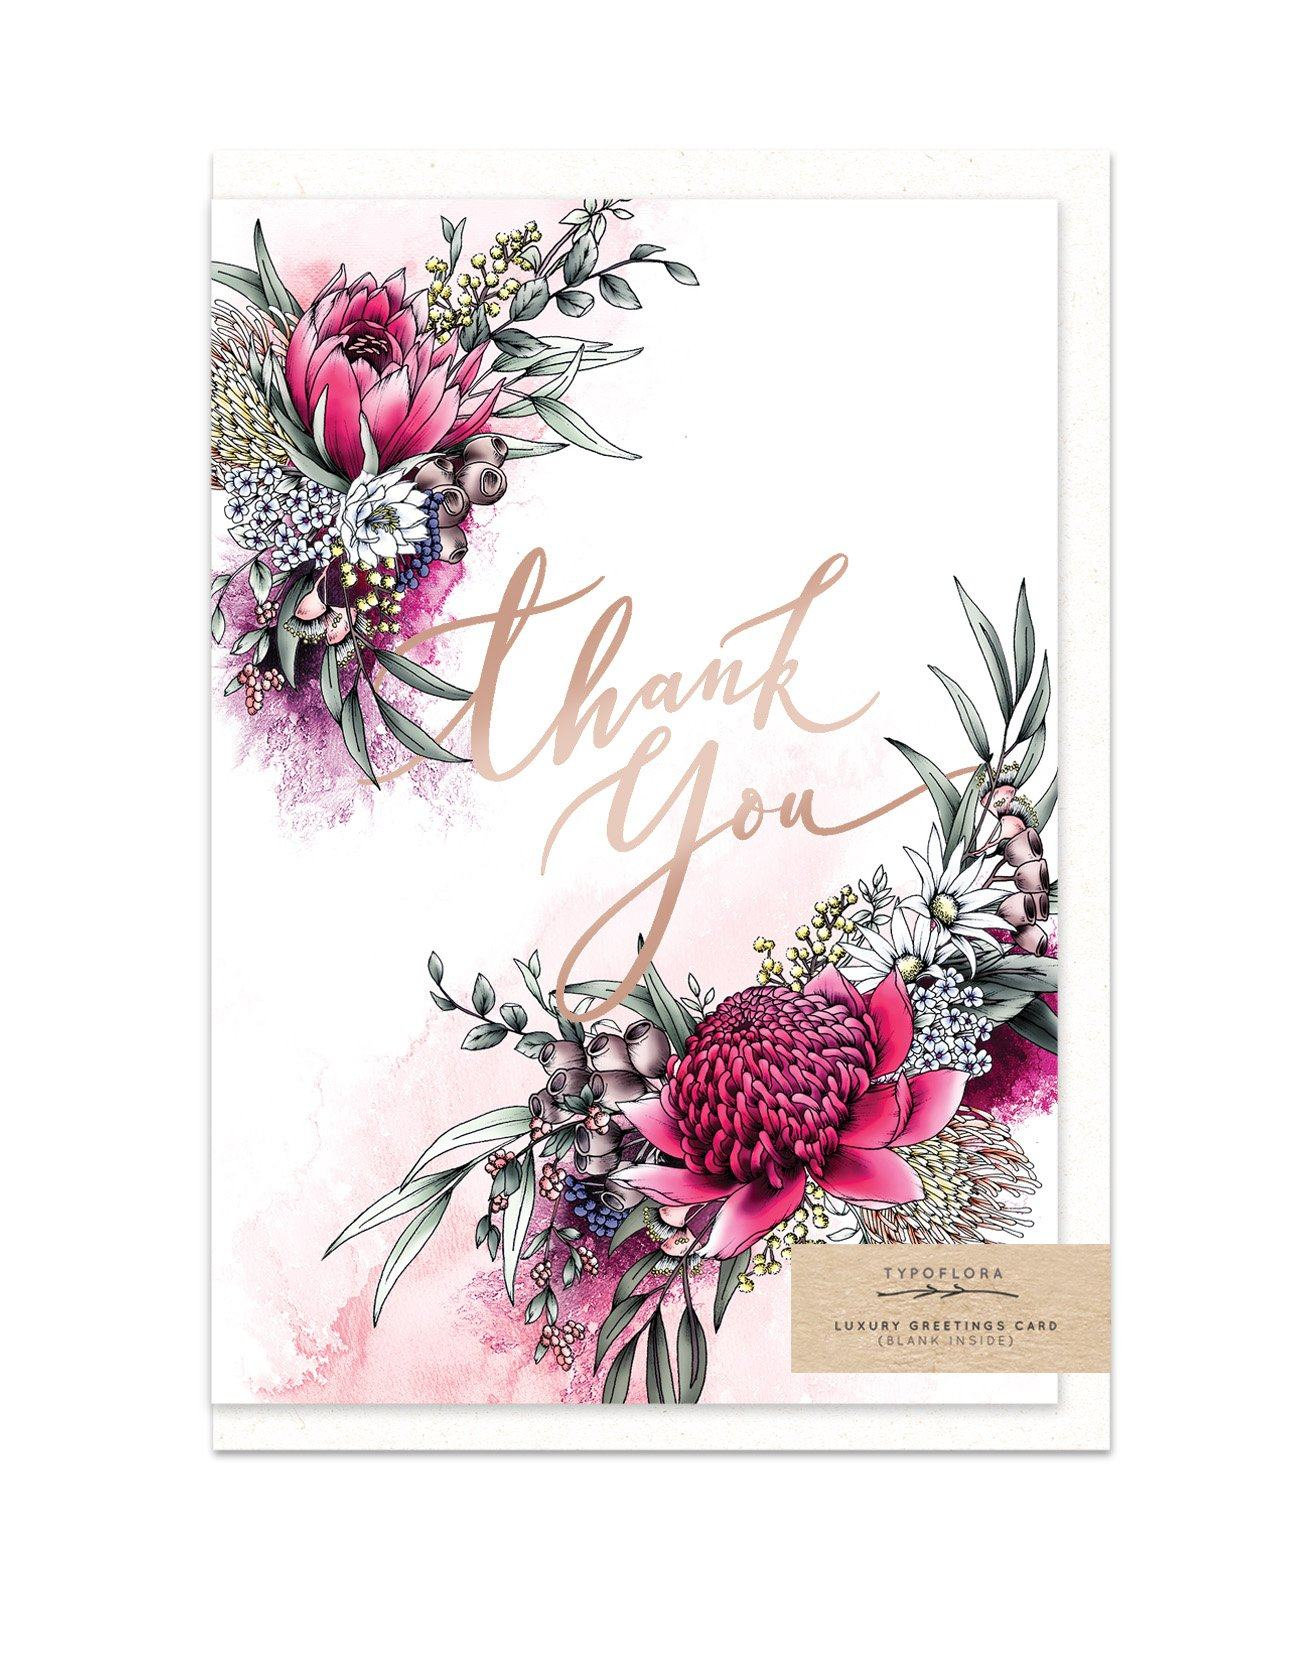 Natives Thank You Card - Thank You Cards - Typoflora - Naiise